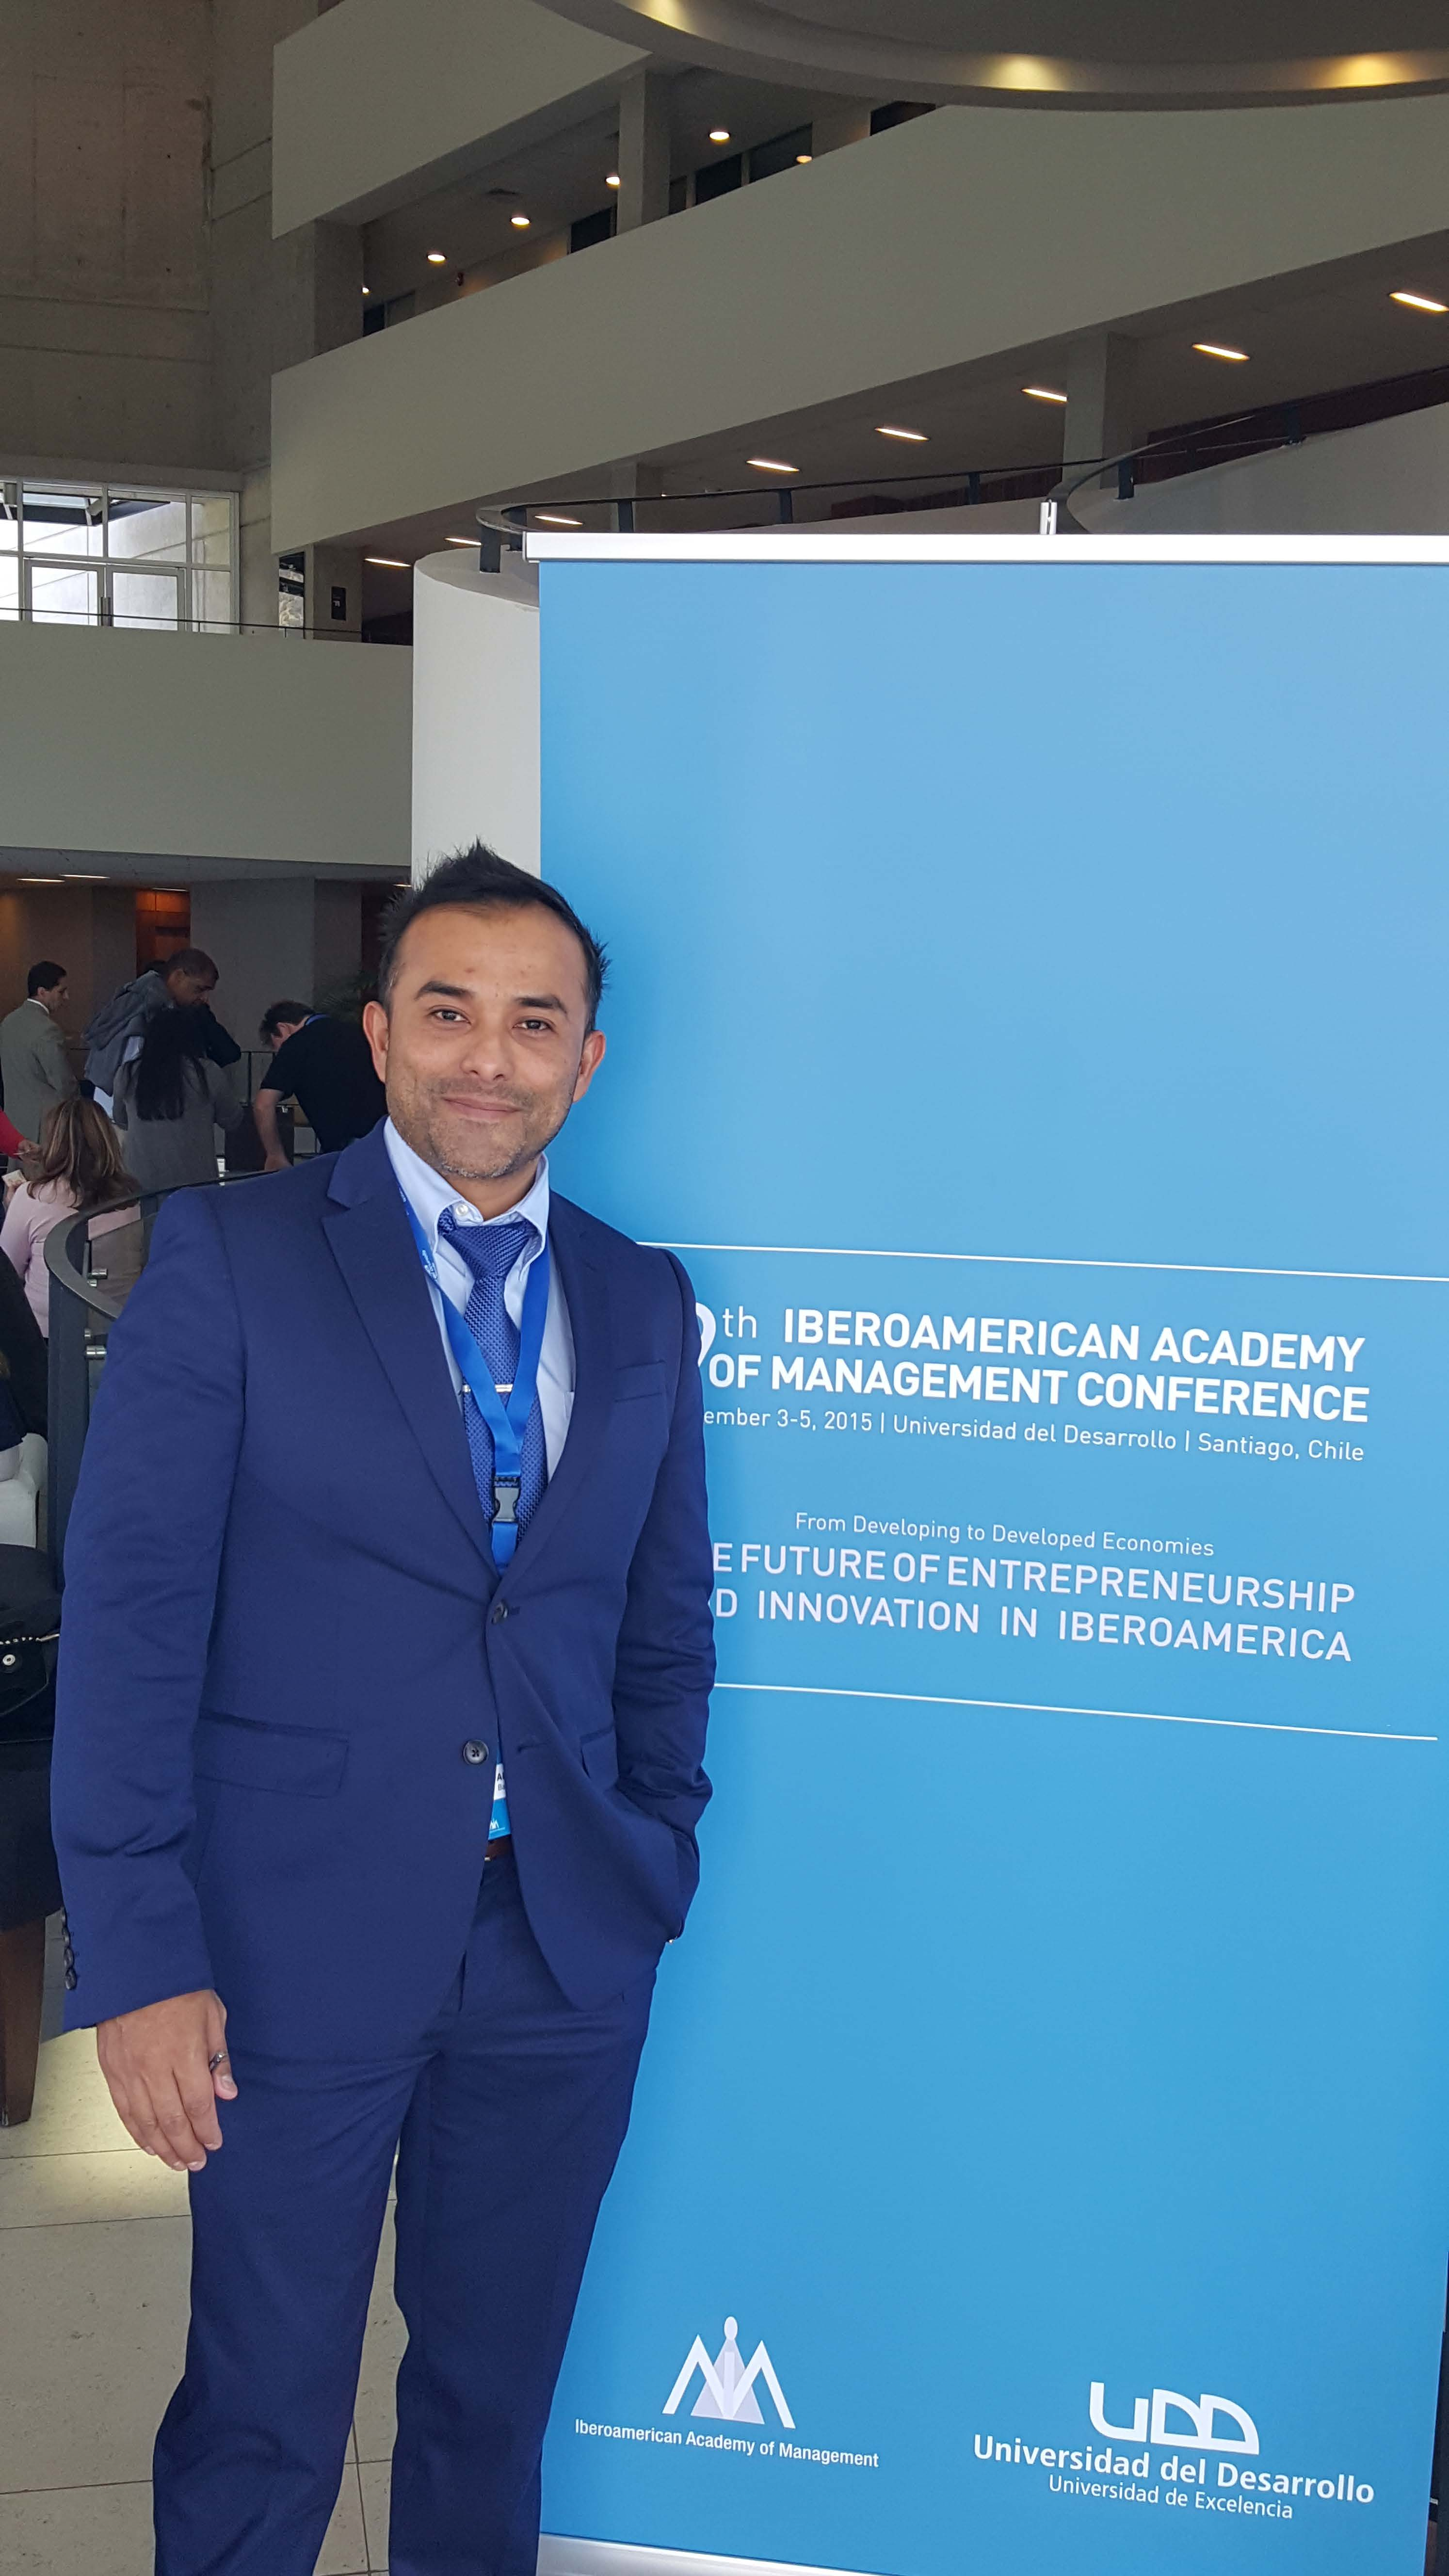 Dr. Barreda presents research at Iberoamerican Academy of Management Conference